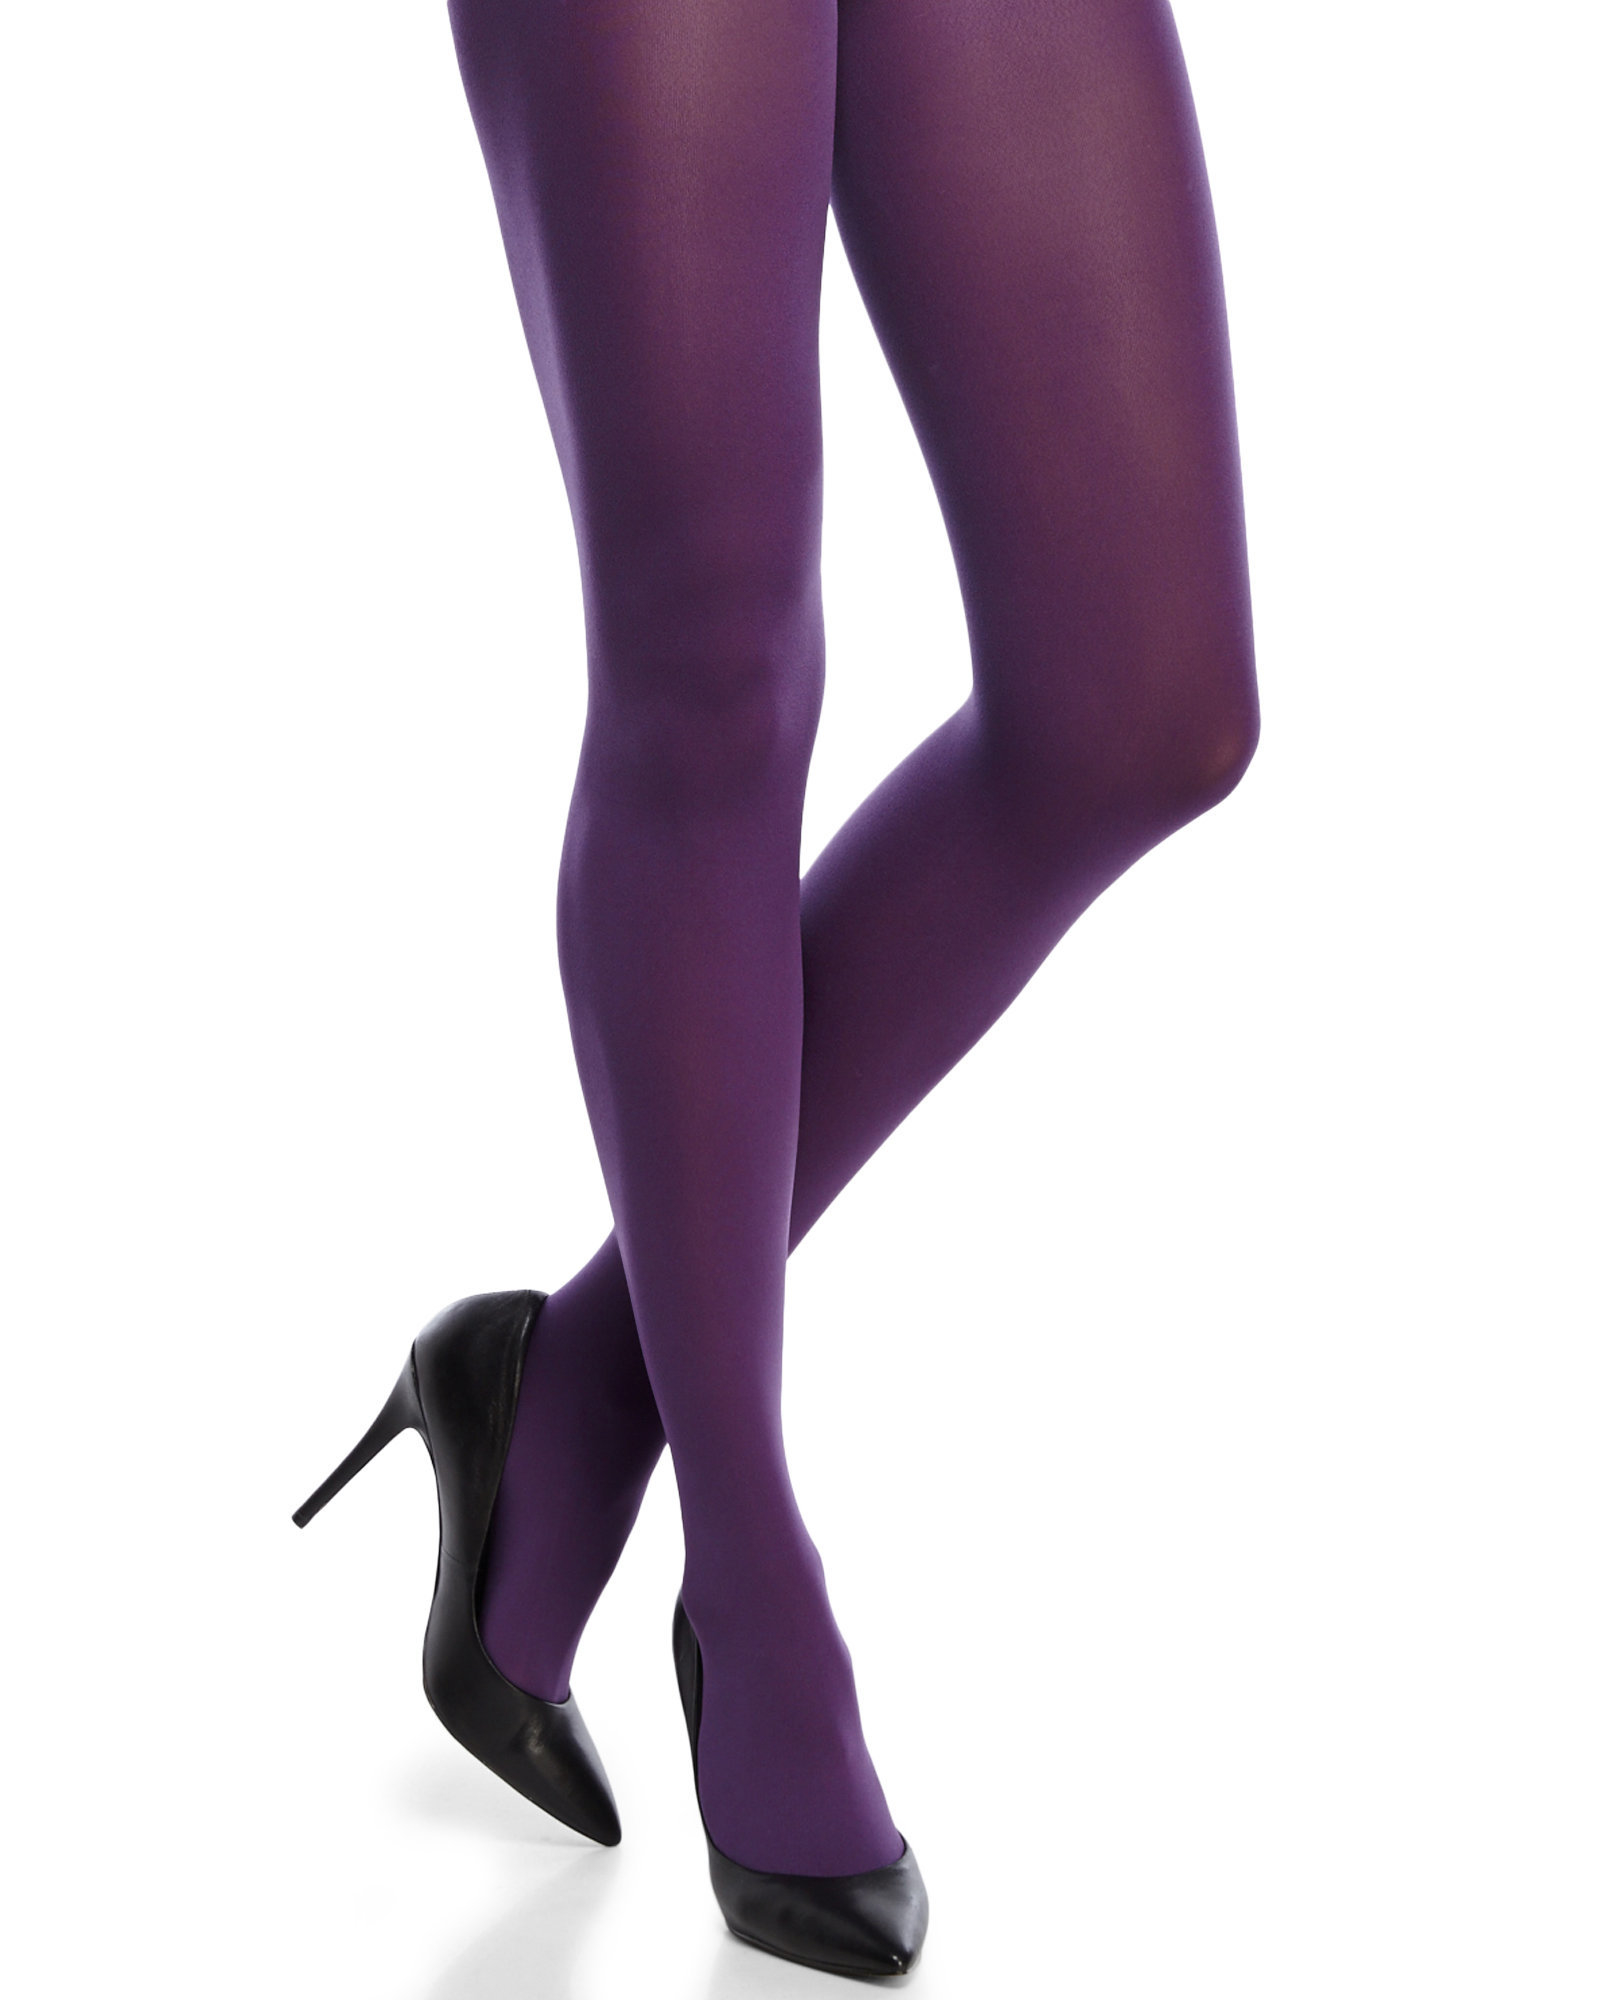 8c6ac4fcb Hue Ultimate Opaque Control Top Tights in Purple - Lyst